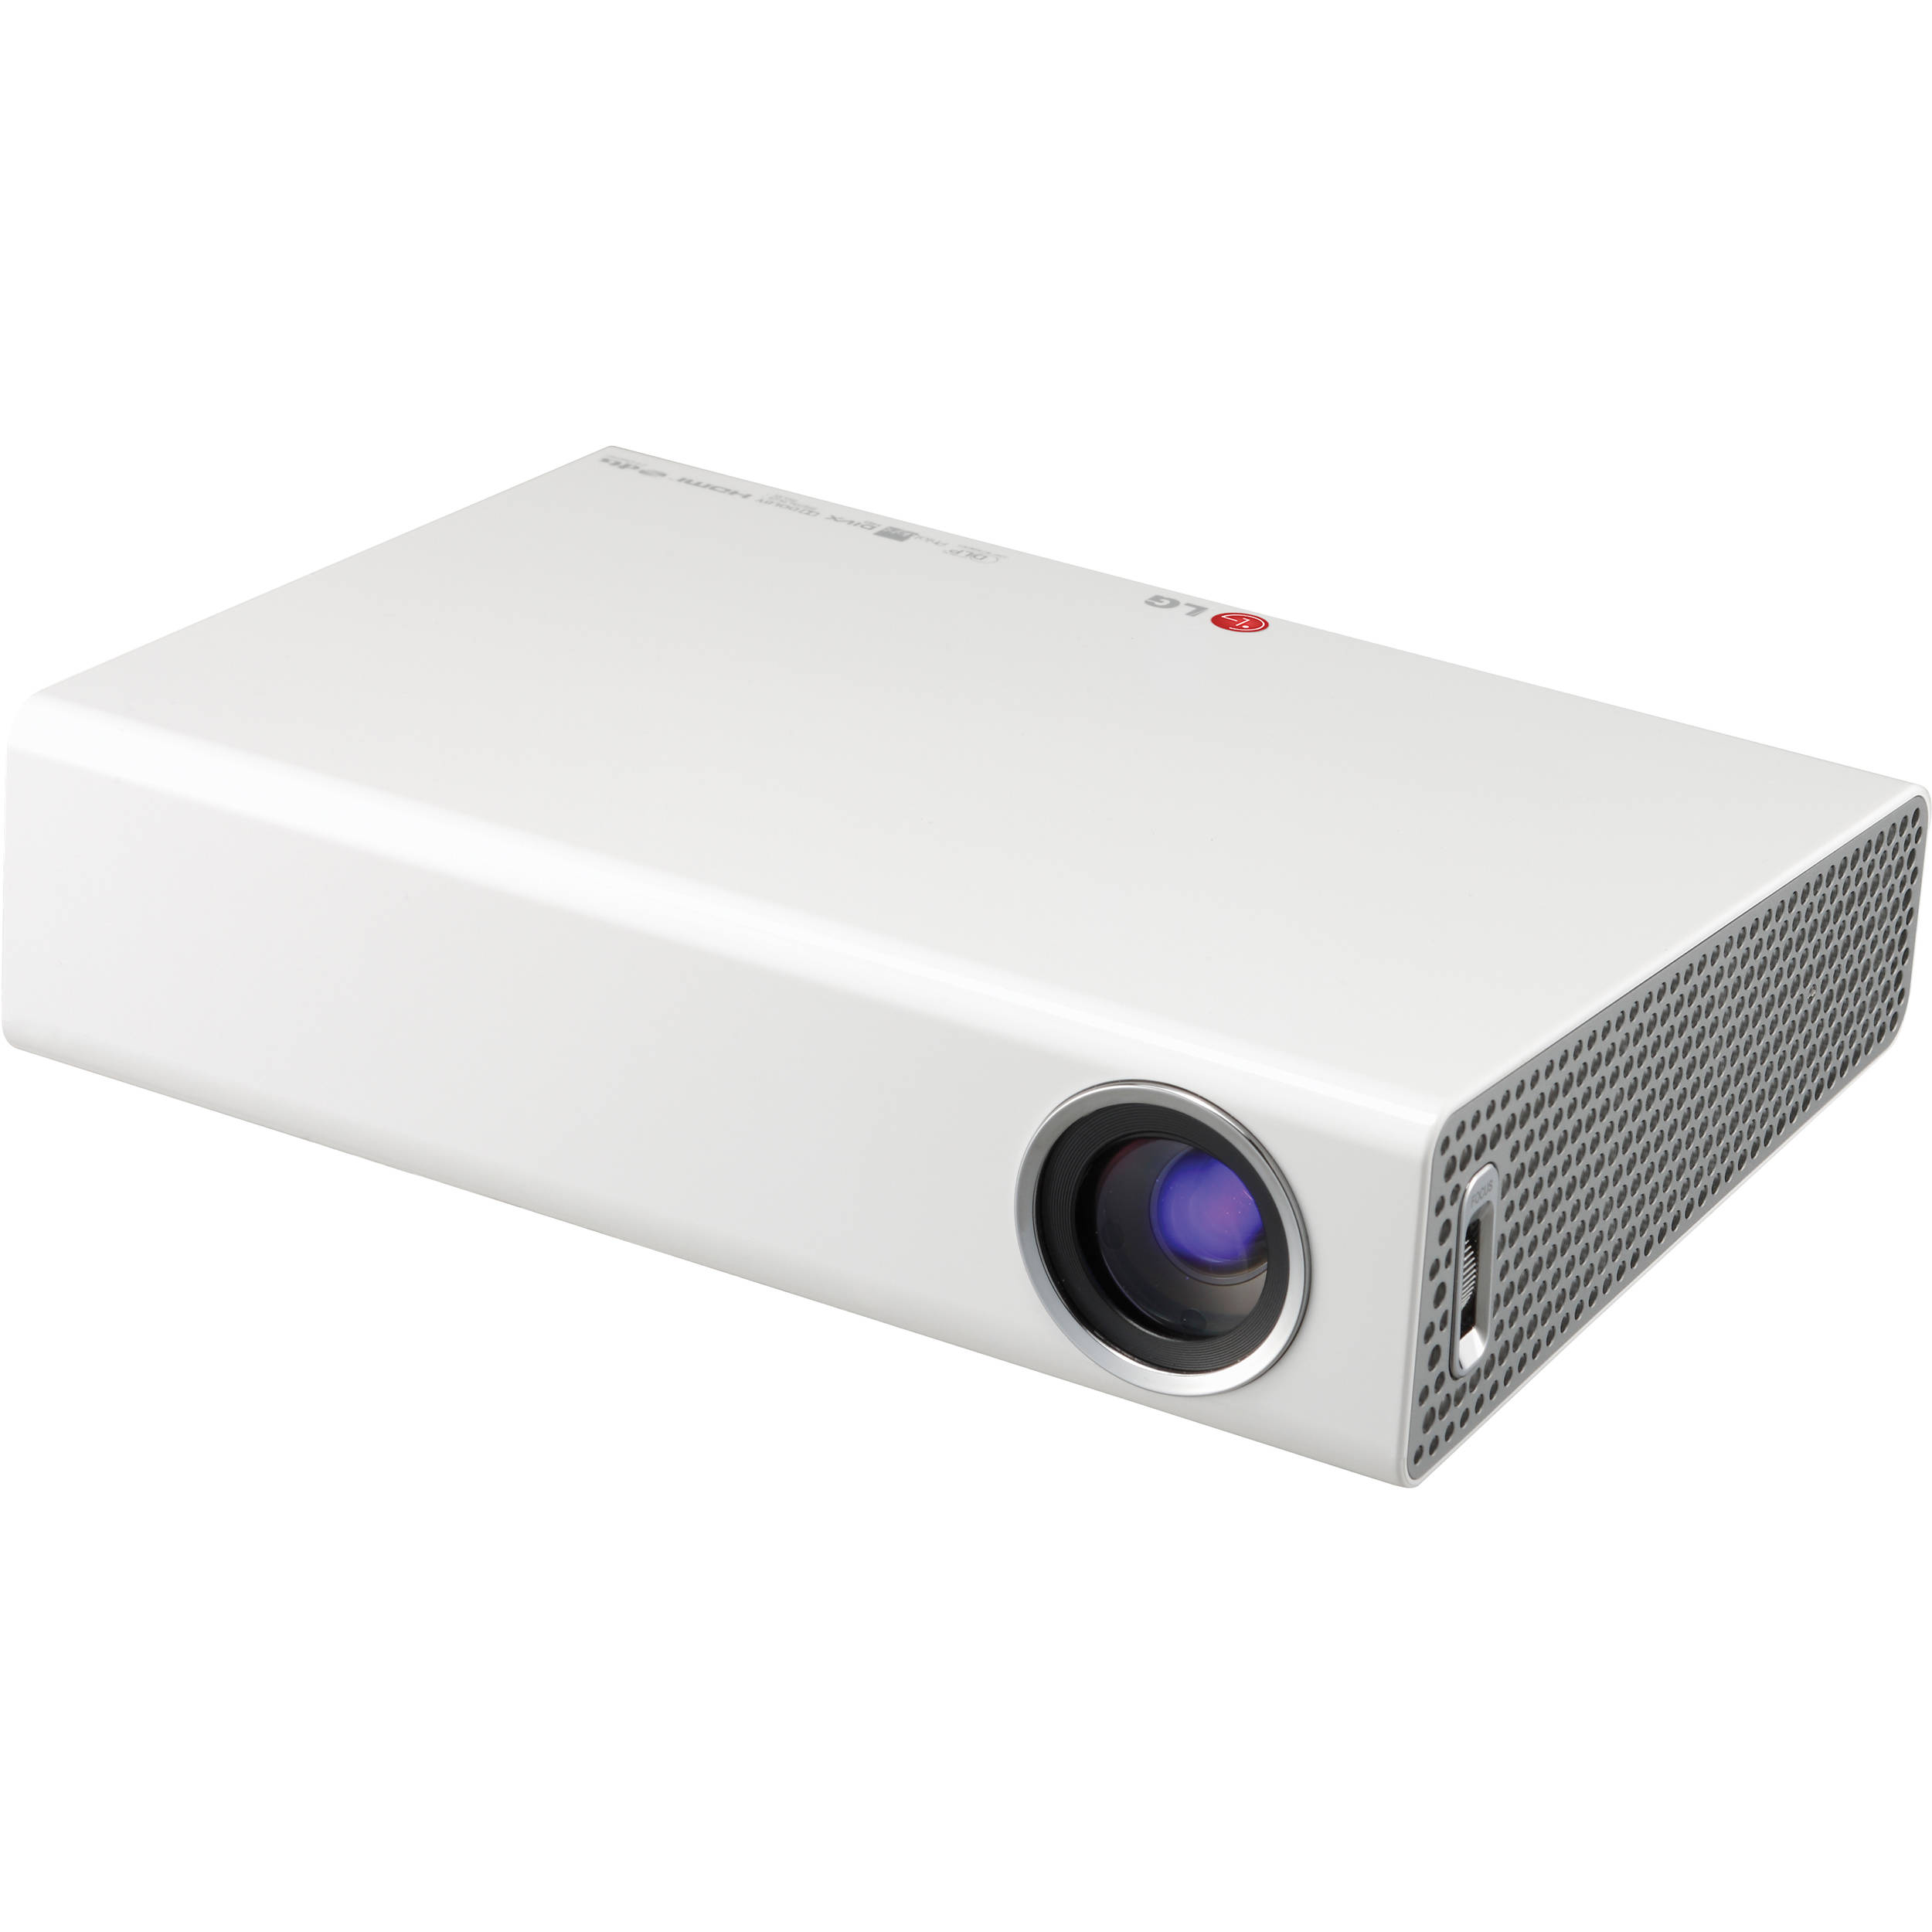 Tv Tuner Projector High Definition Home Theater Wxga Full: LG PA77U Portable LED Projector With Built-In Digital TV PA77U